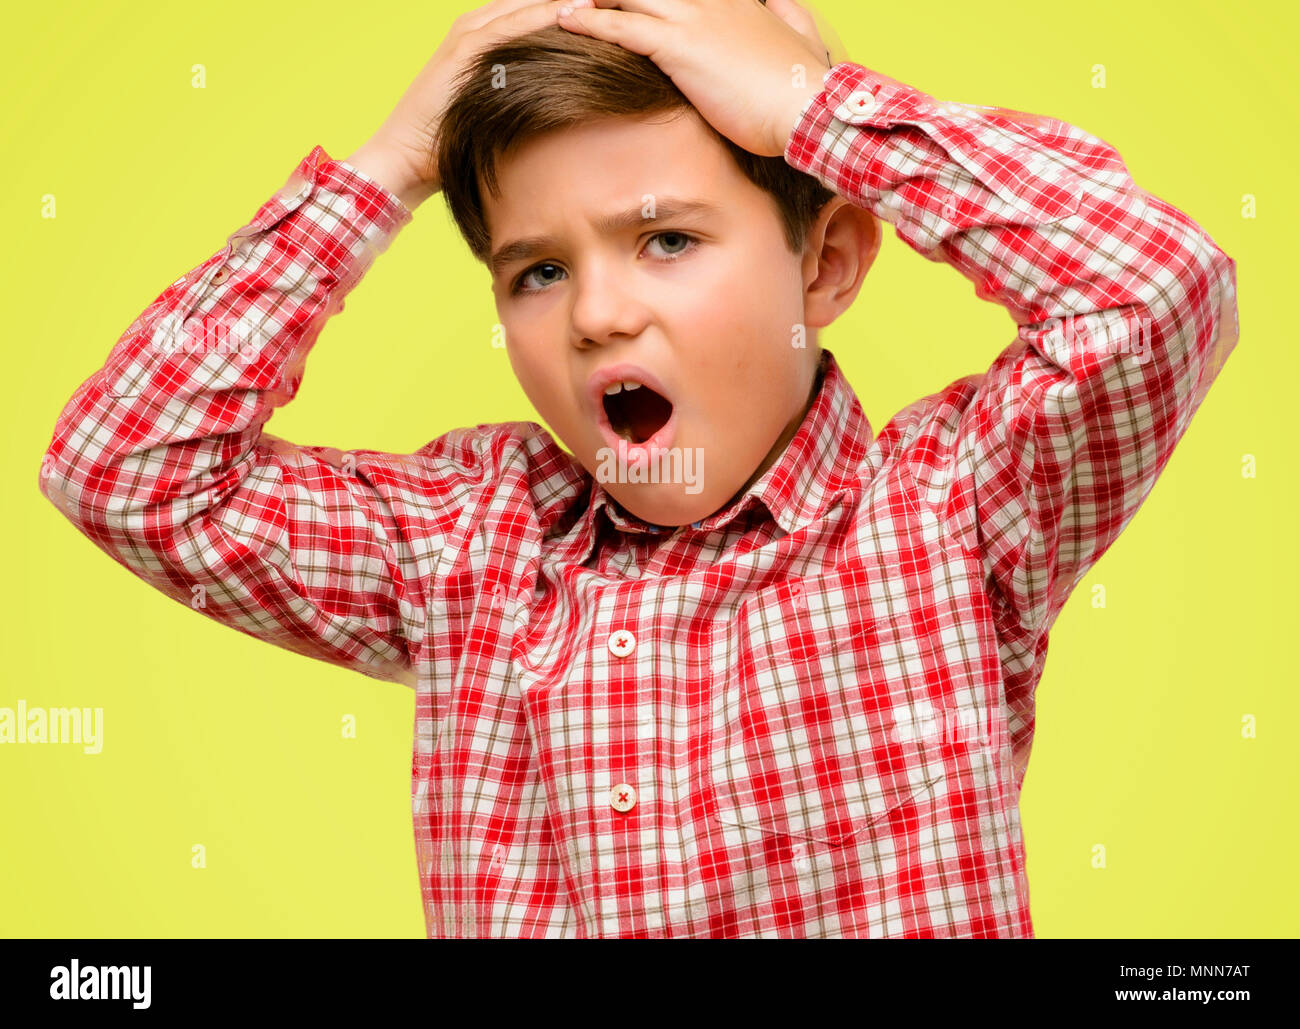 Handsome toddler child with green eyes stressful keeping hands on head, terrified in panic, shouting over yellow background - Stock Image